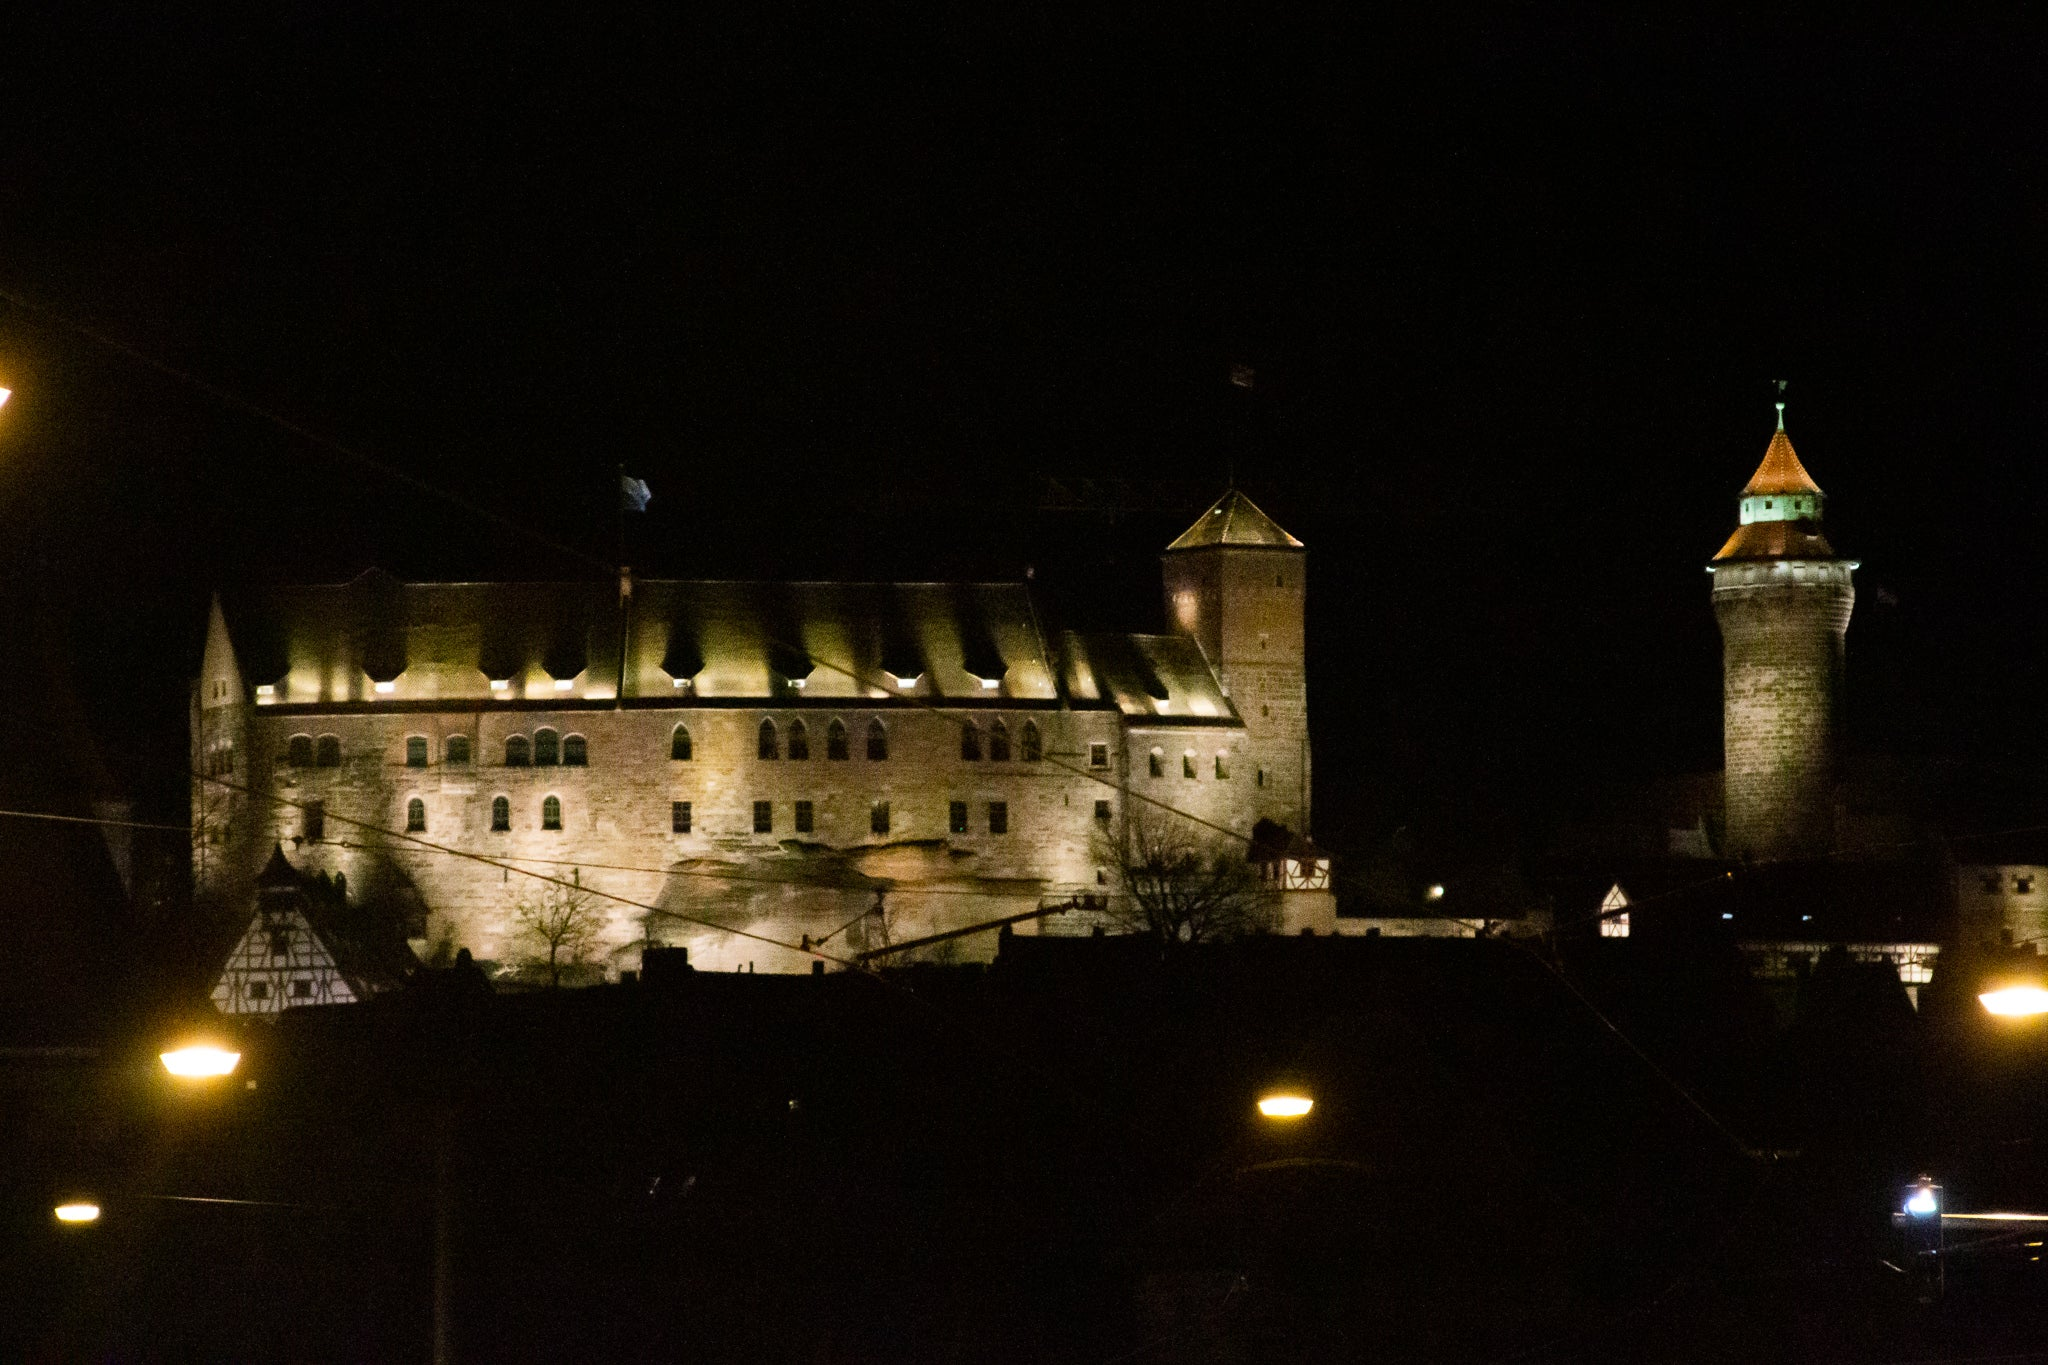 Nuremberg Castle at night street view